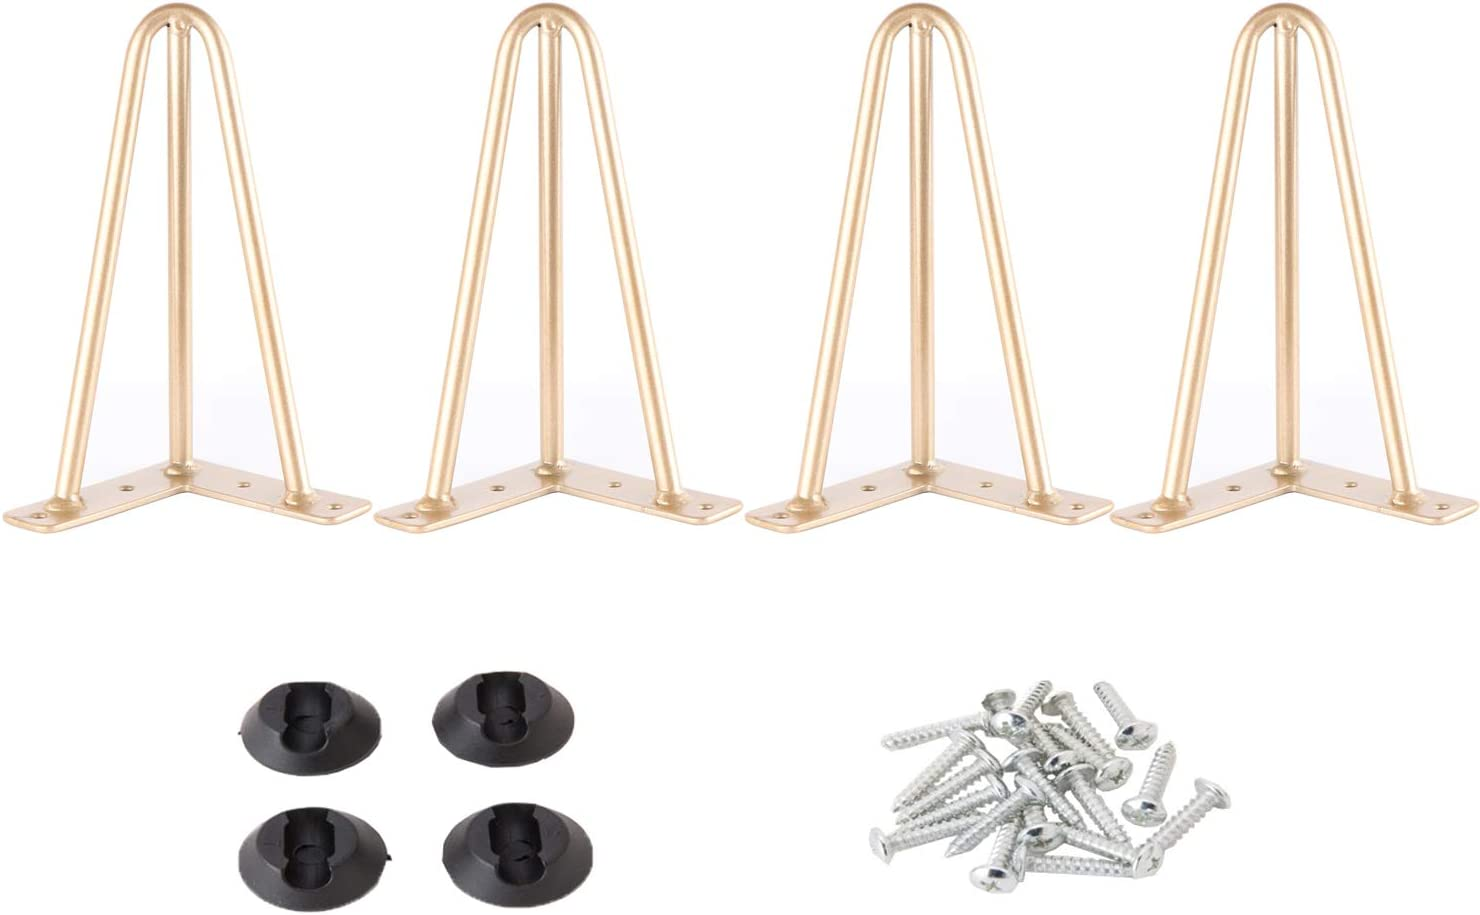 Osring Metal Hairpin Table Legs 6 Inch, Furniture Leg Gold with 3/8